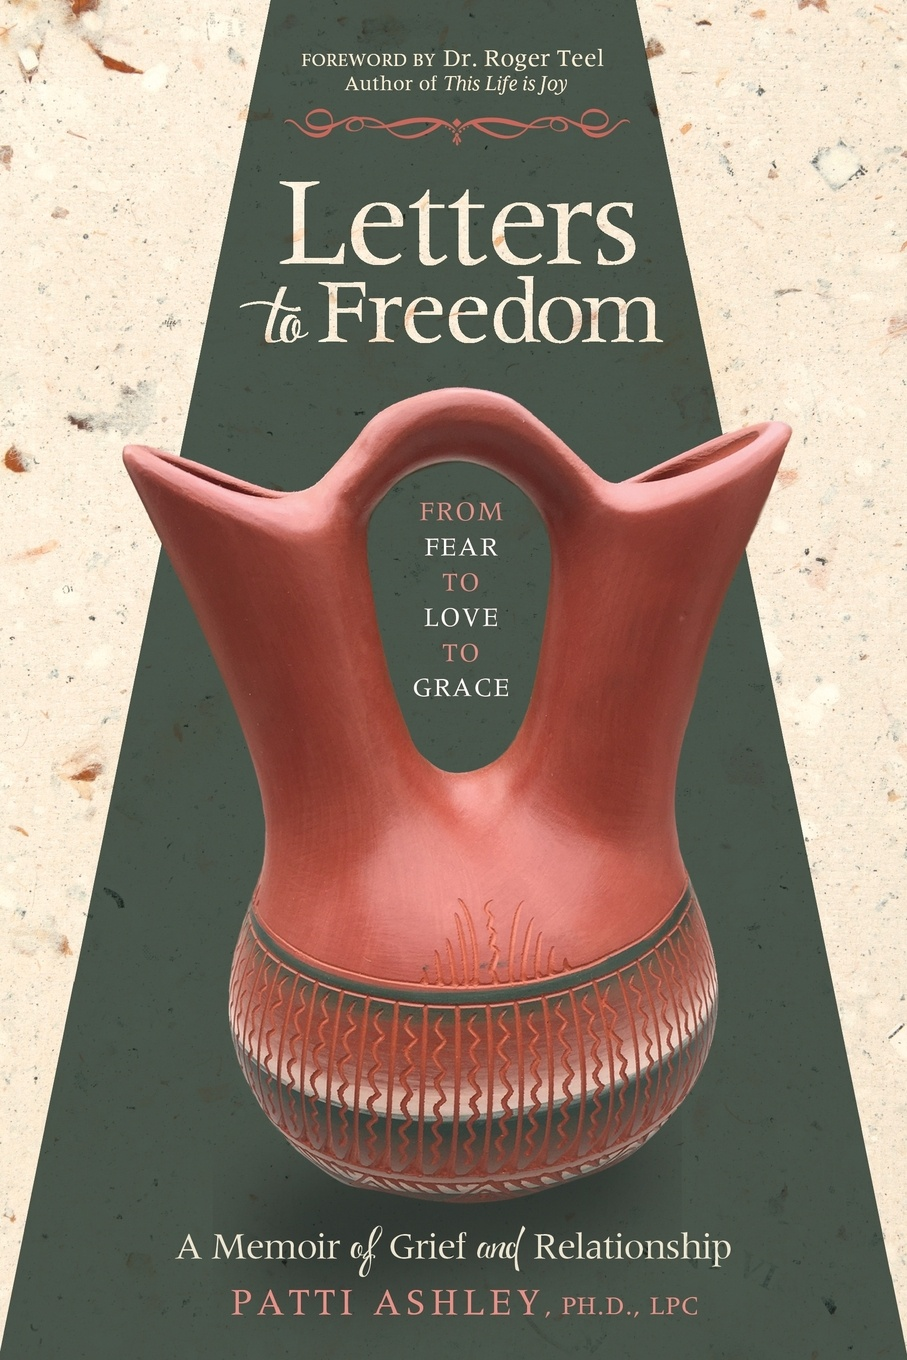 Patti Ashley Letters to Freedom. From Fear to Love to Grace 12n50m2 to 220f